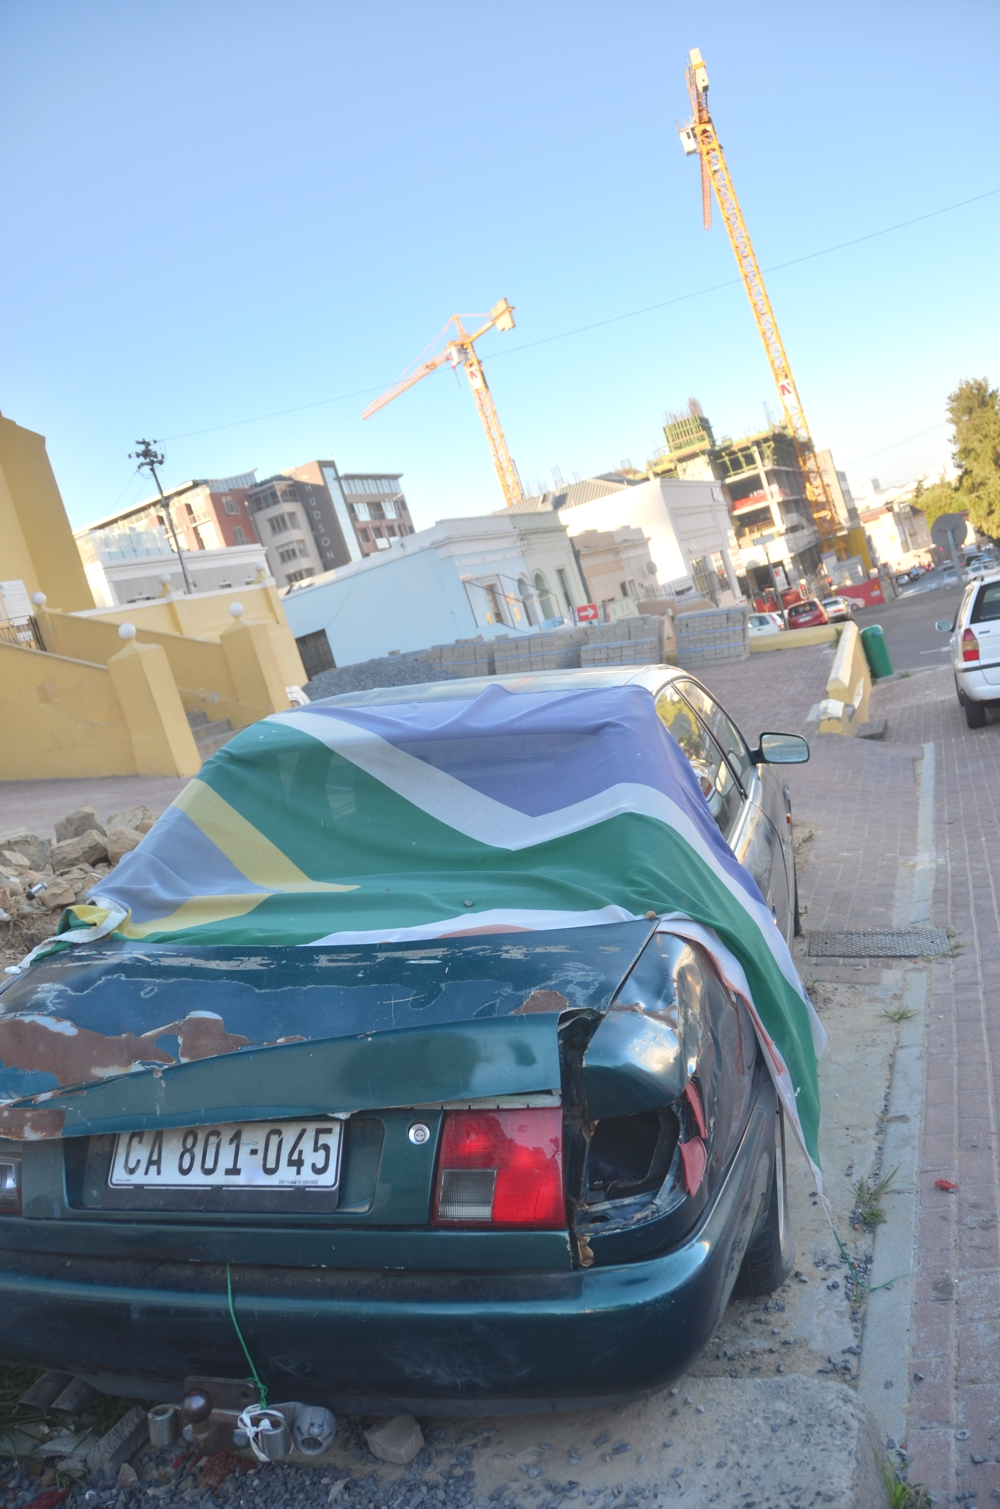 This picture seems to be a good metaphor for South Africa as a whole